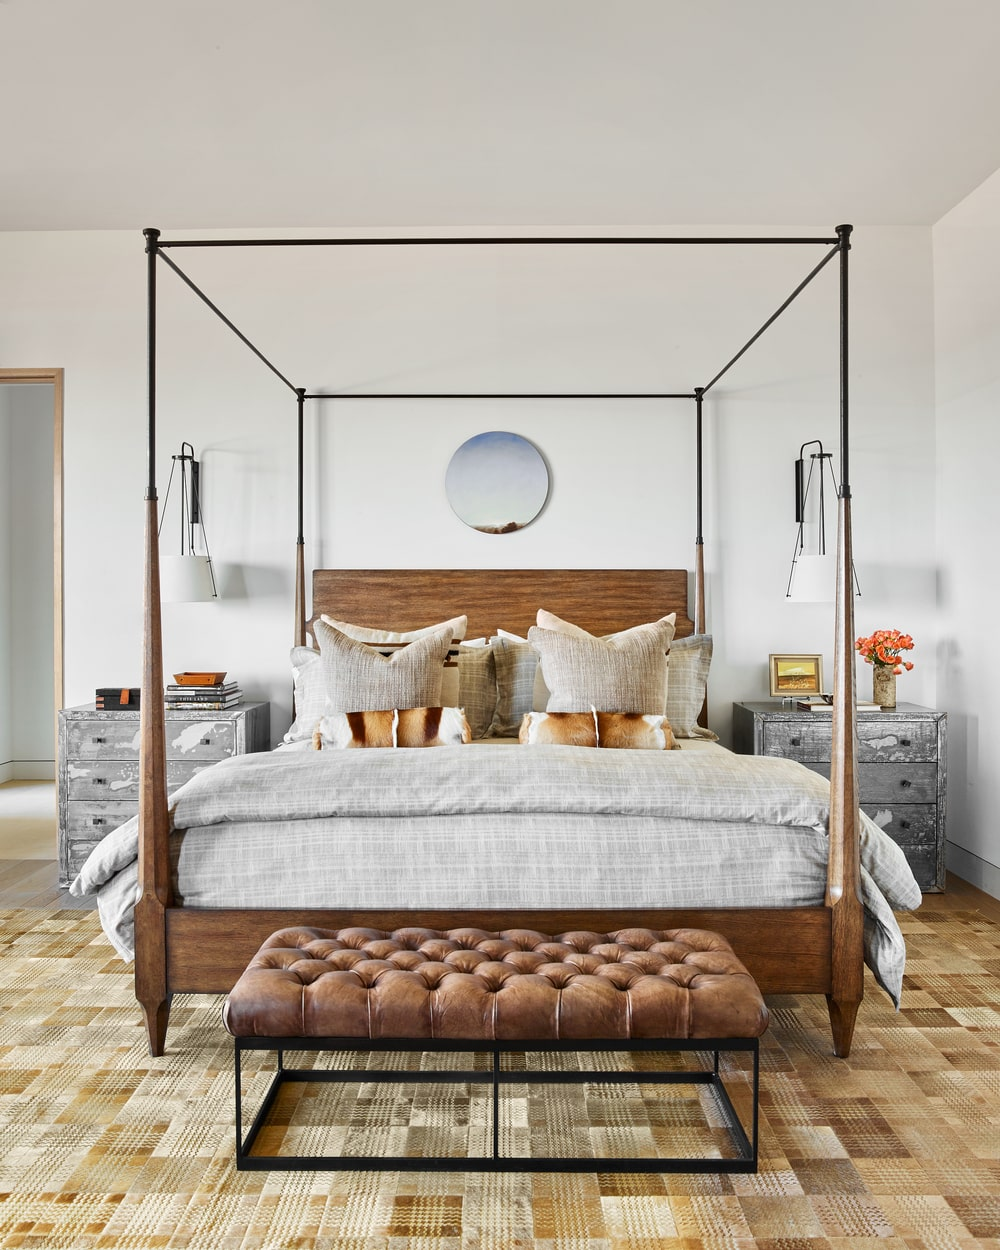 This is a look at the primary bedroom dominated by a large four-poster bed with a tufted bench at the foot and gray bedside drawers.